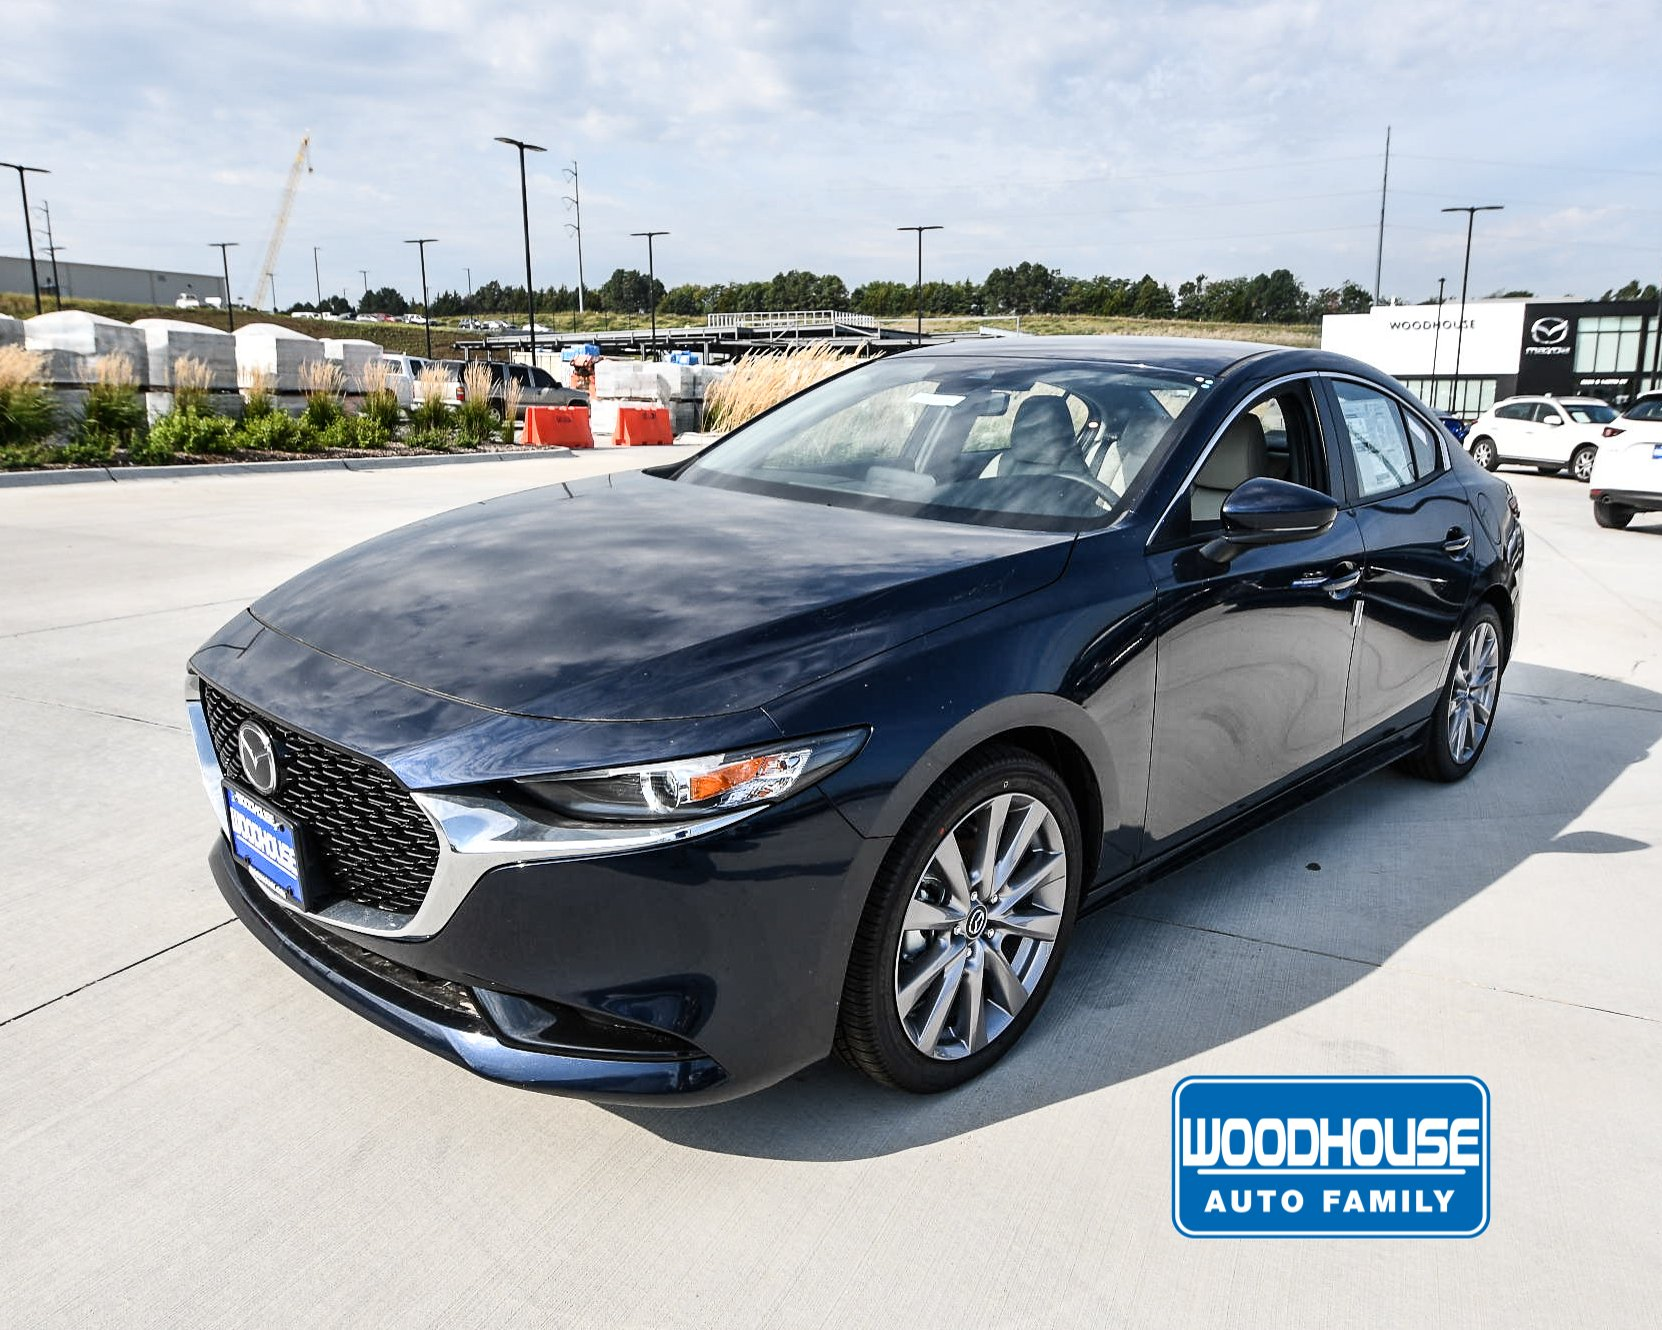 New 2019 Mazda3 Sedan w/Preferred Pkg With Navigation